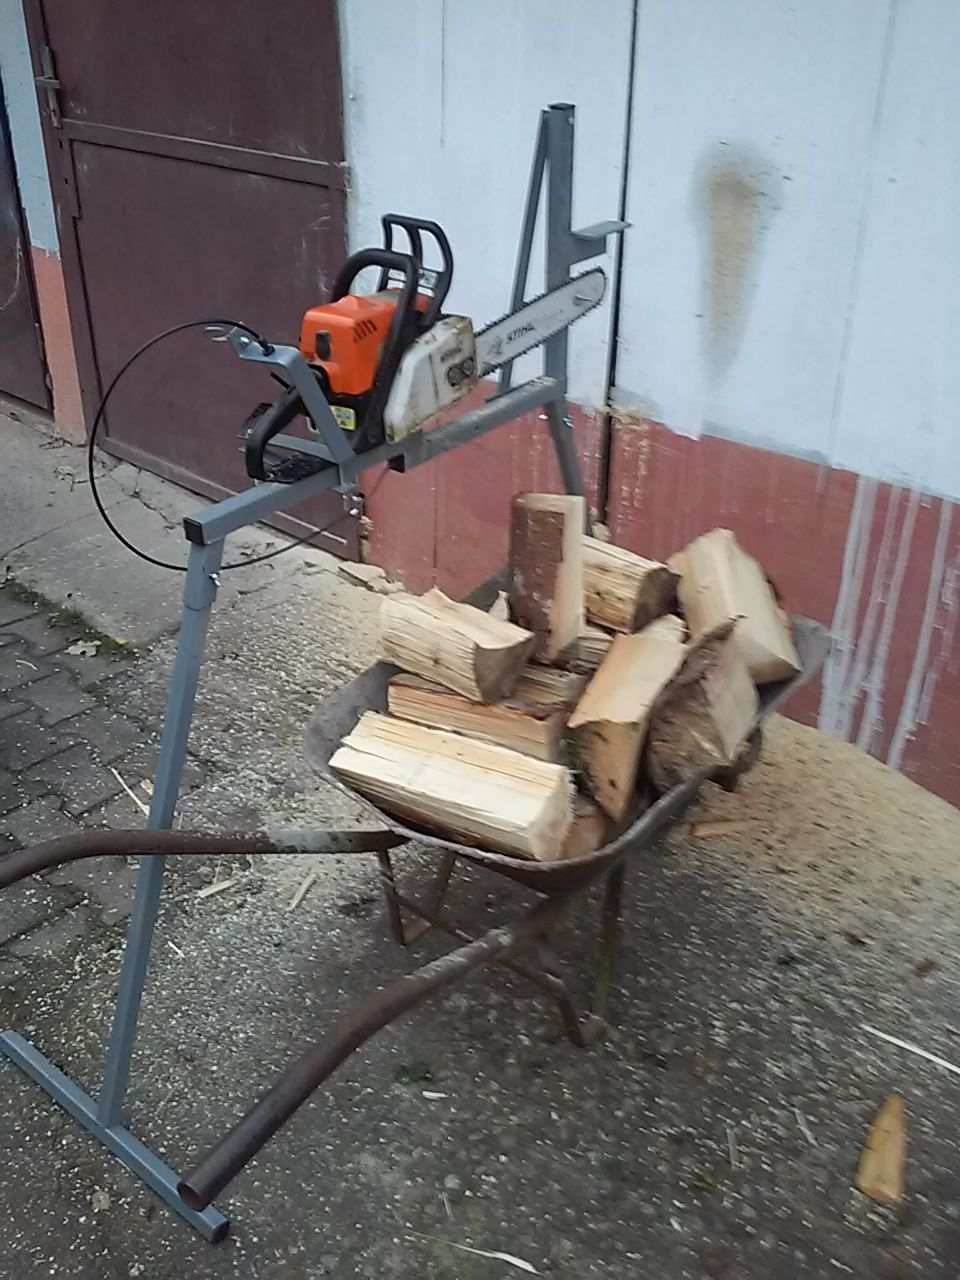 pin by mario faktor on log holder for cutting wood metal chainsaw